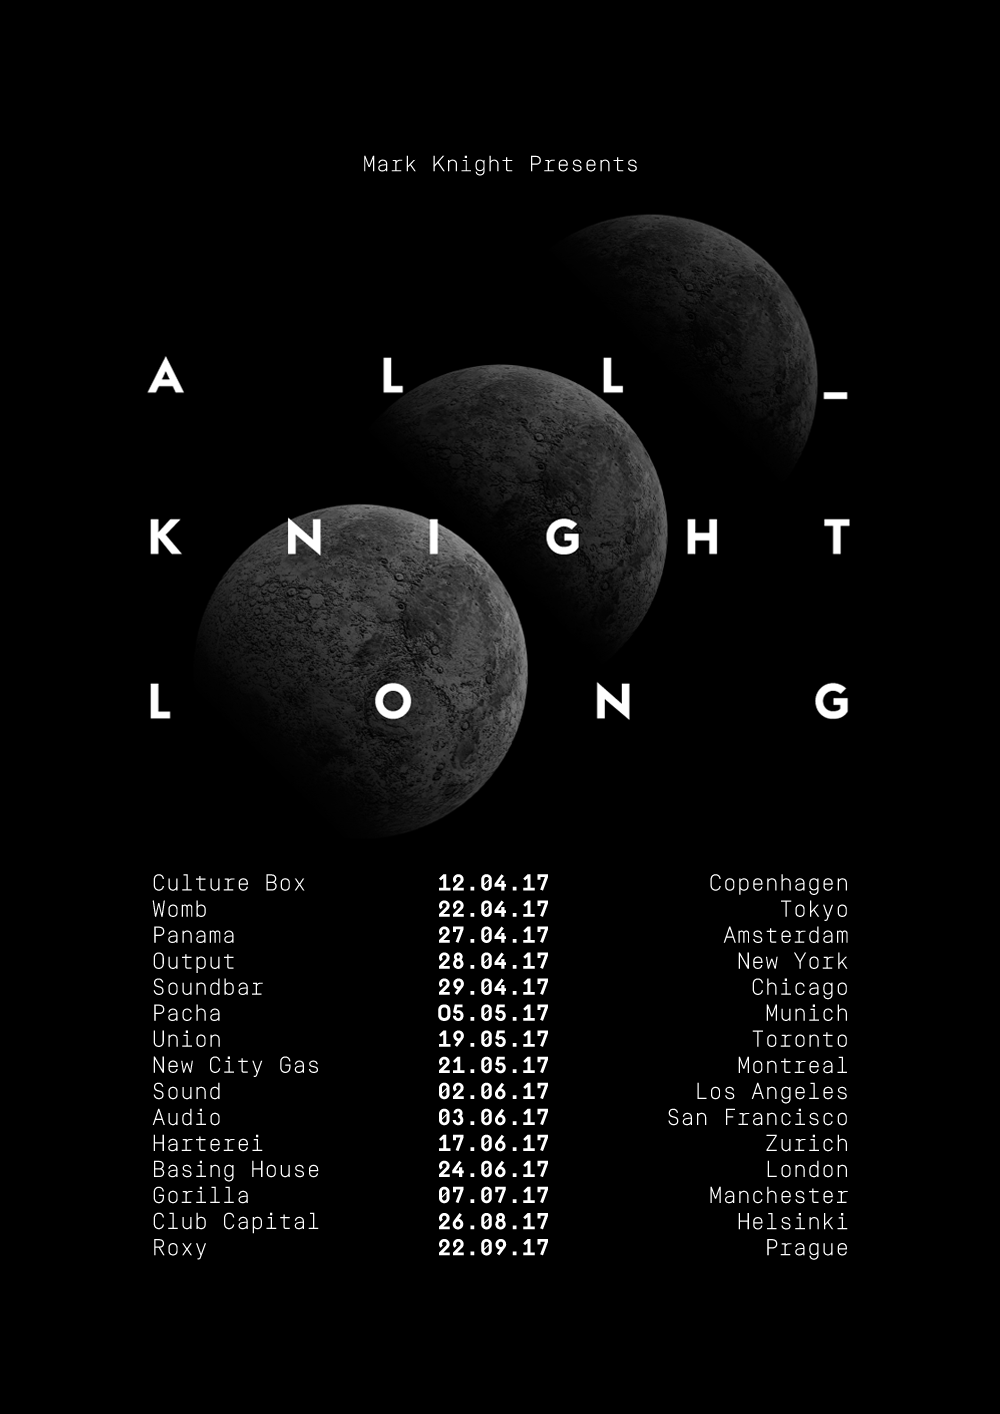 Mark Knight Announces All Knight Long Tour New City Gas Knight Tours